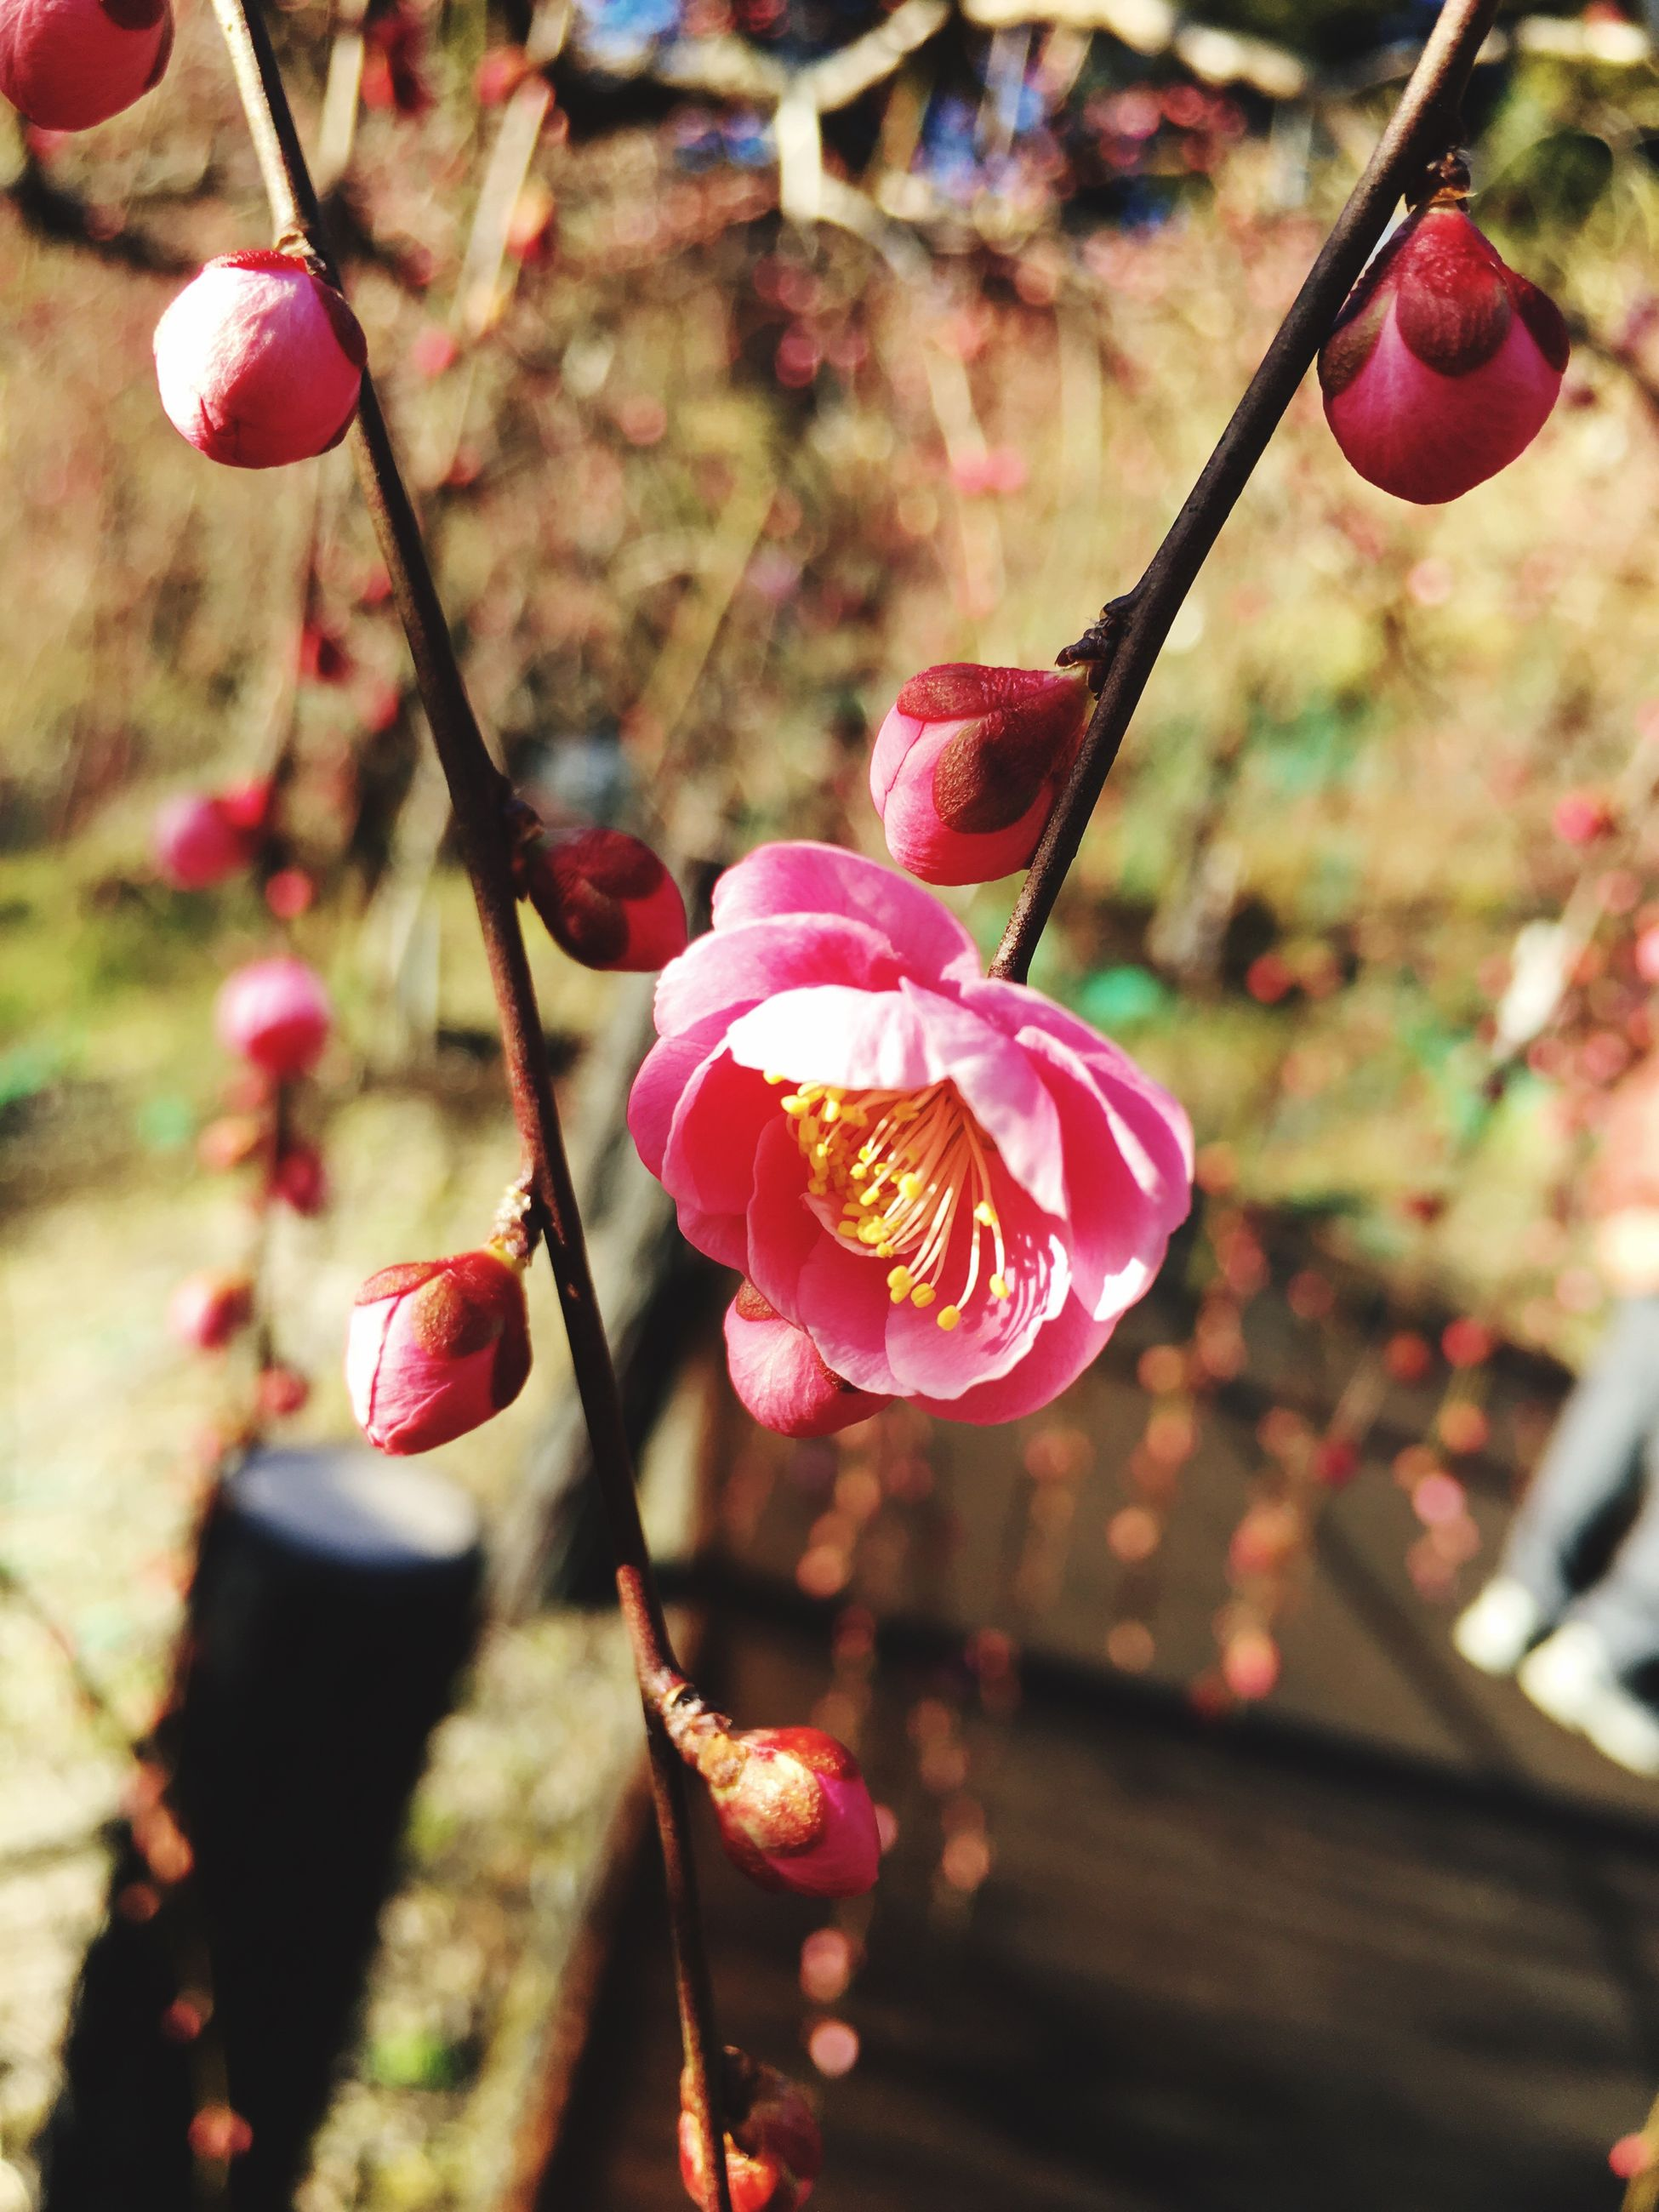 flower, growth, beauty in nature, nature, fragility, freshness, pink color, petal, focus on foreground, close-up, no people, outdoors, flower head, day, plant, plum blossom